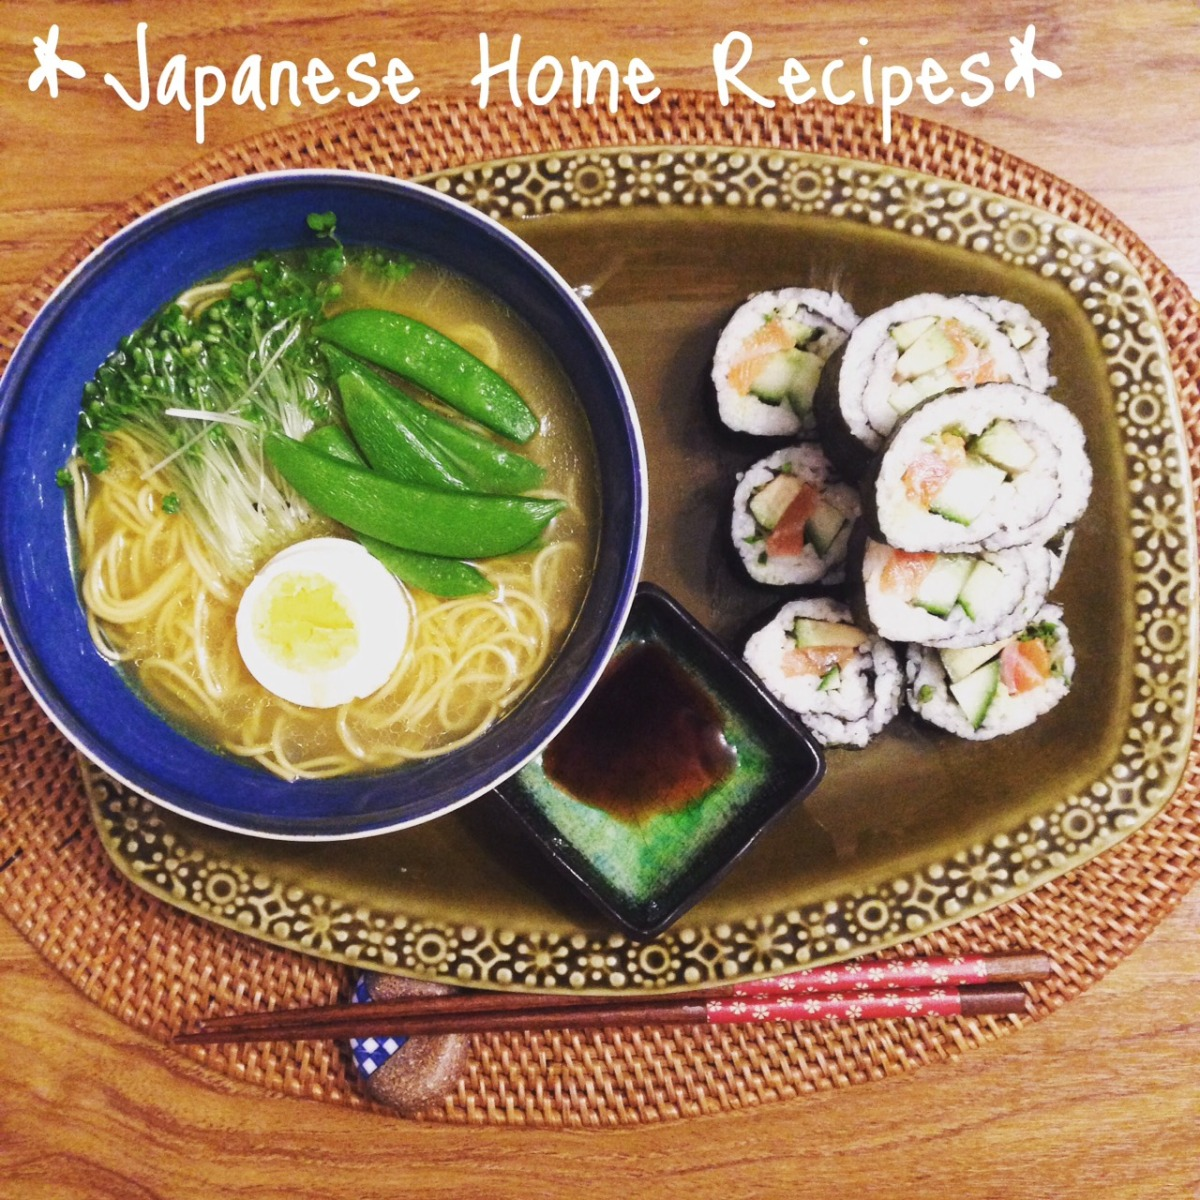 Welcome to Japanese Home Recipes!